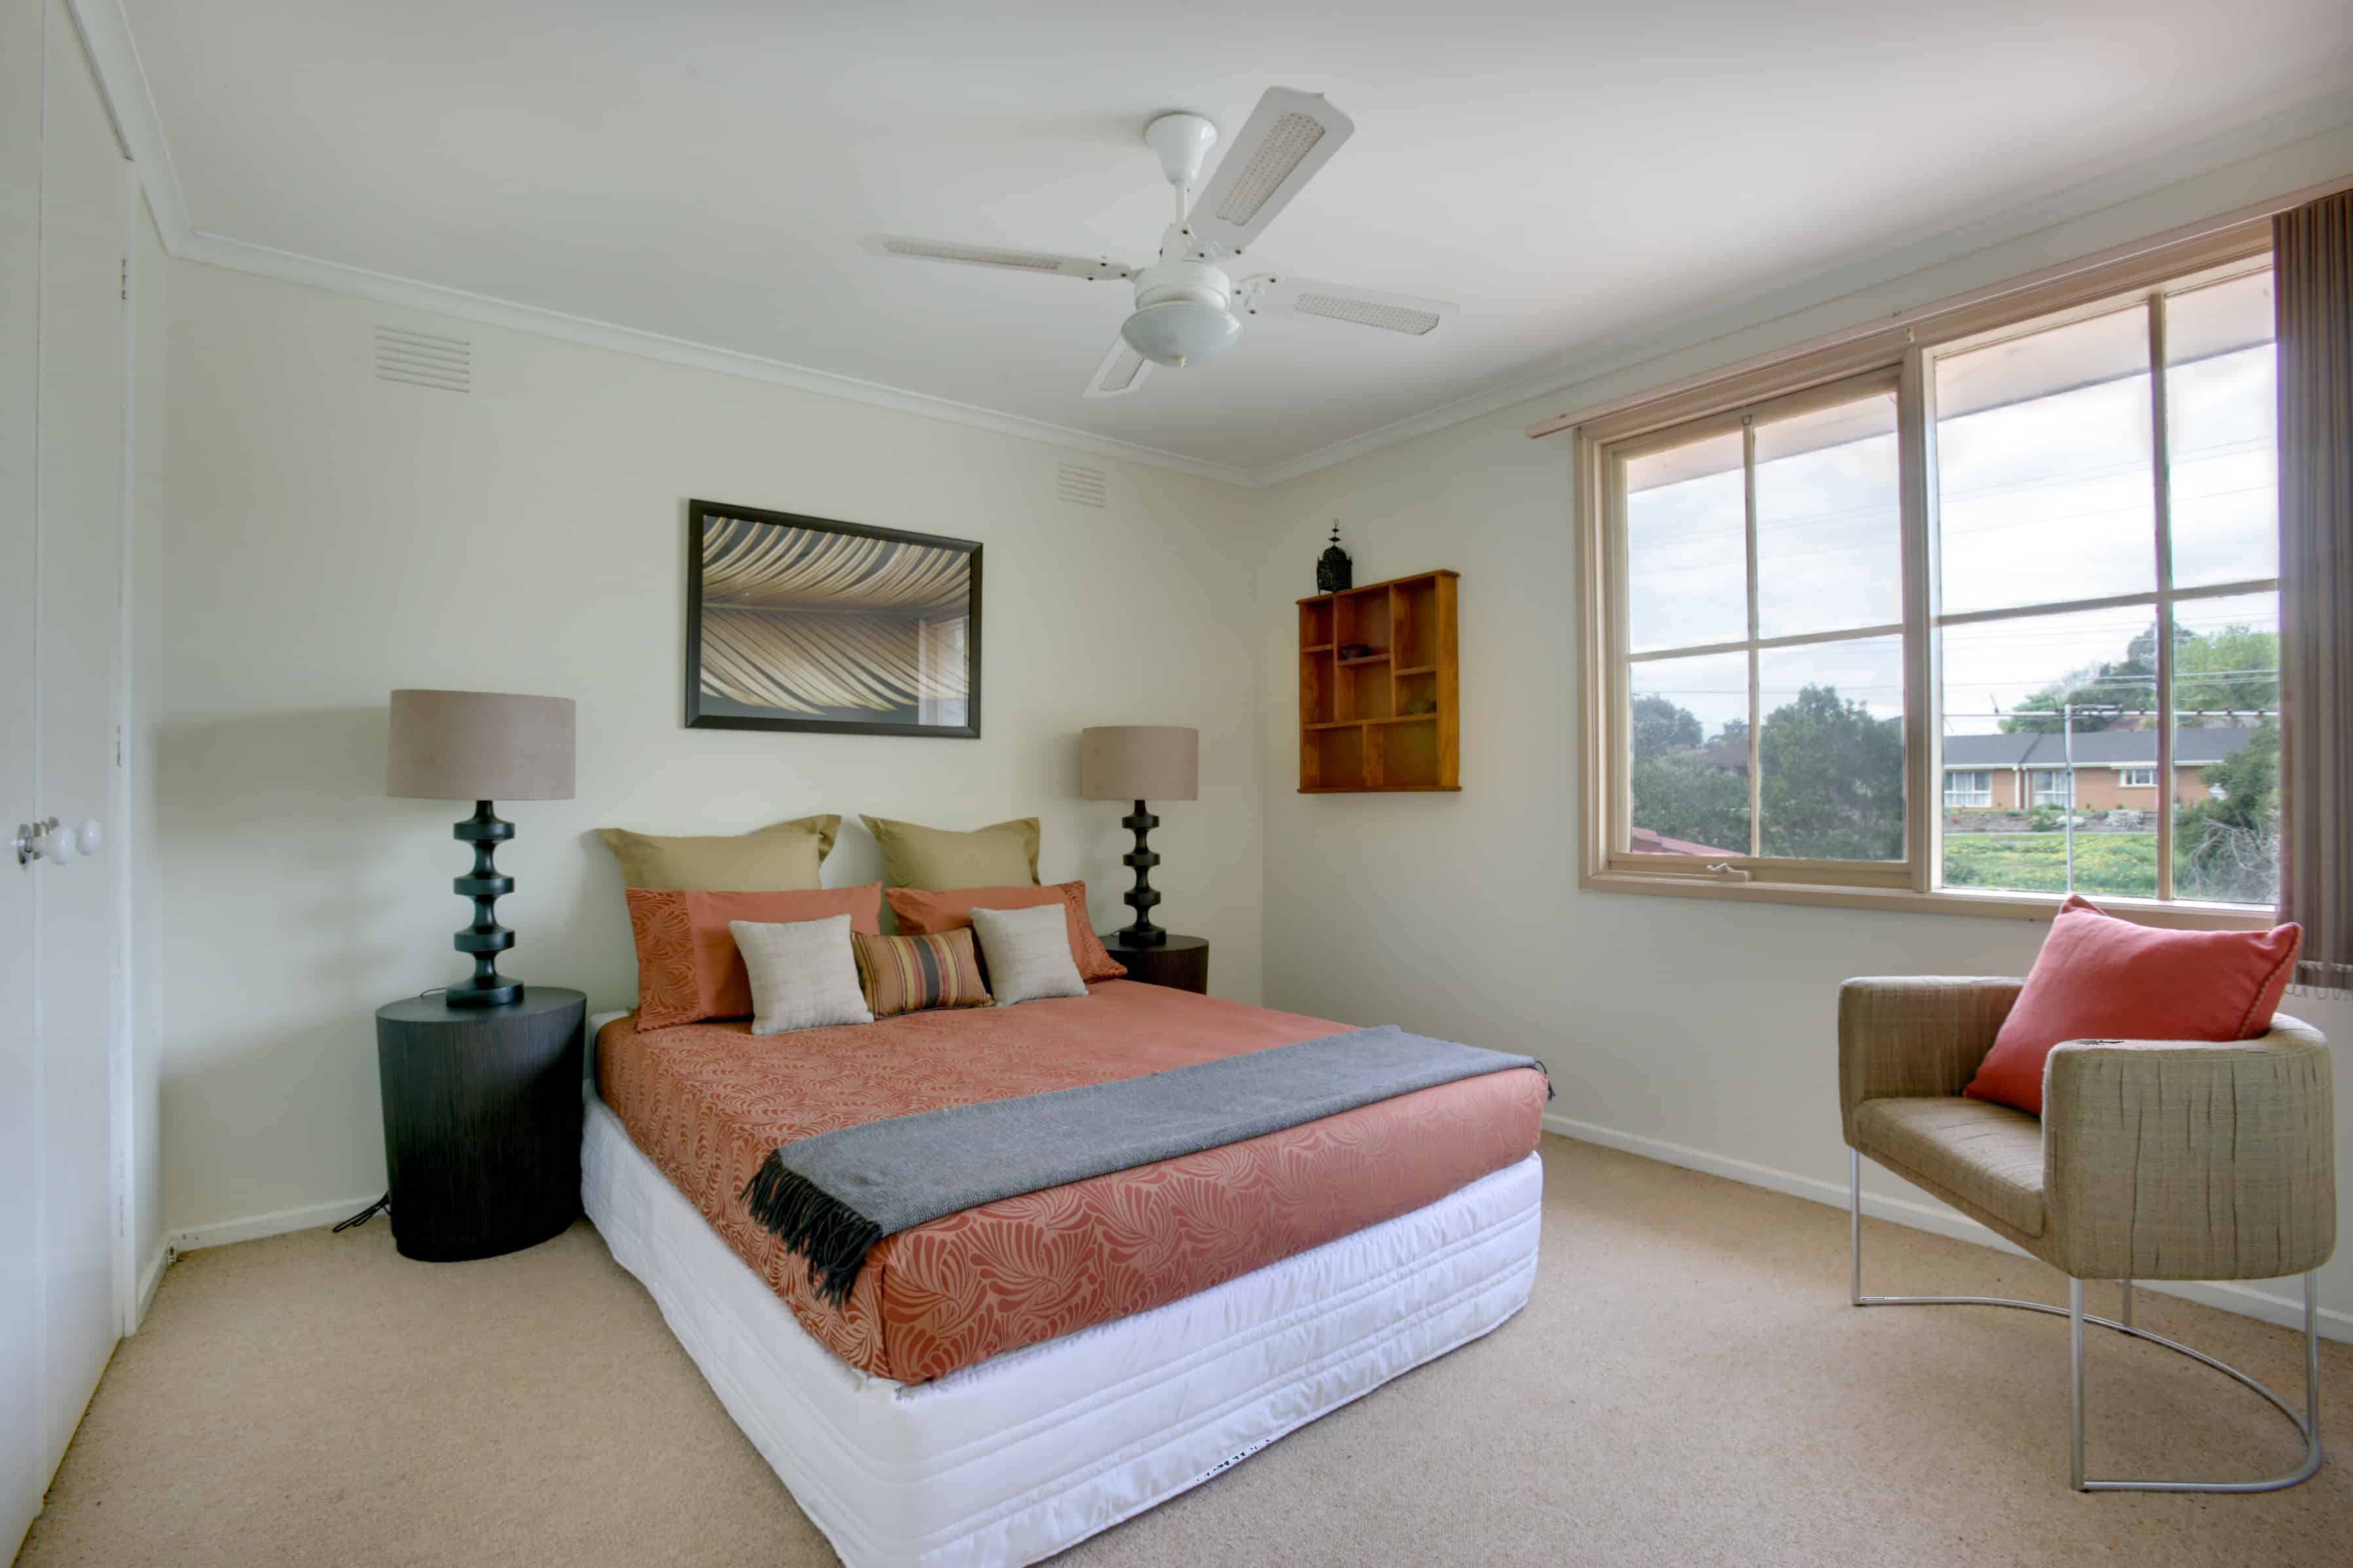 A modern bedroom with minimal furniture . The coloring is neutral that makes the beautiful black lamp shades pop even more. The large window allows lots of natural light coming through.